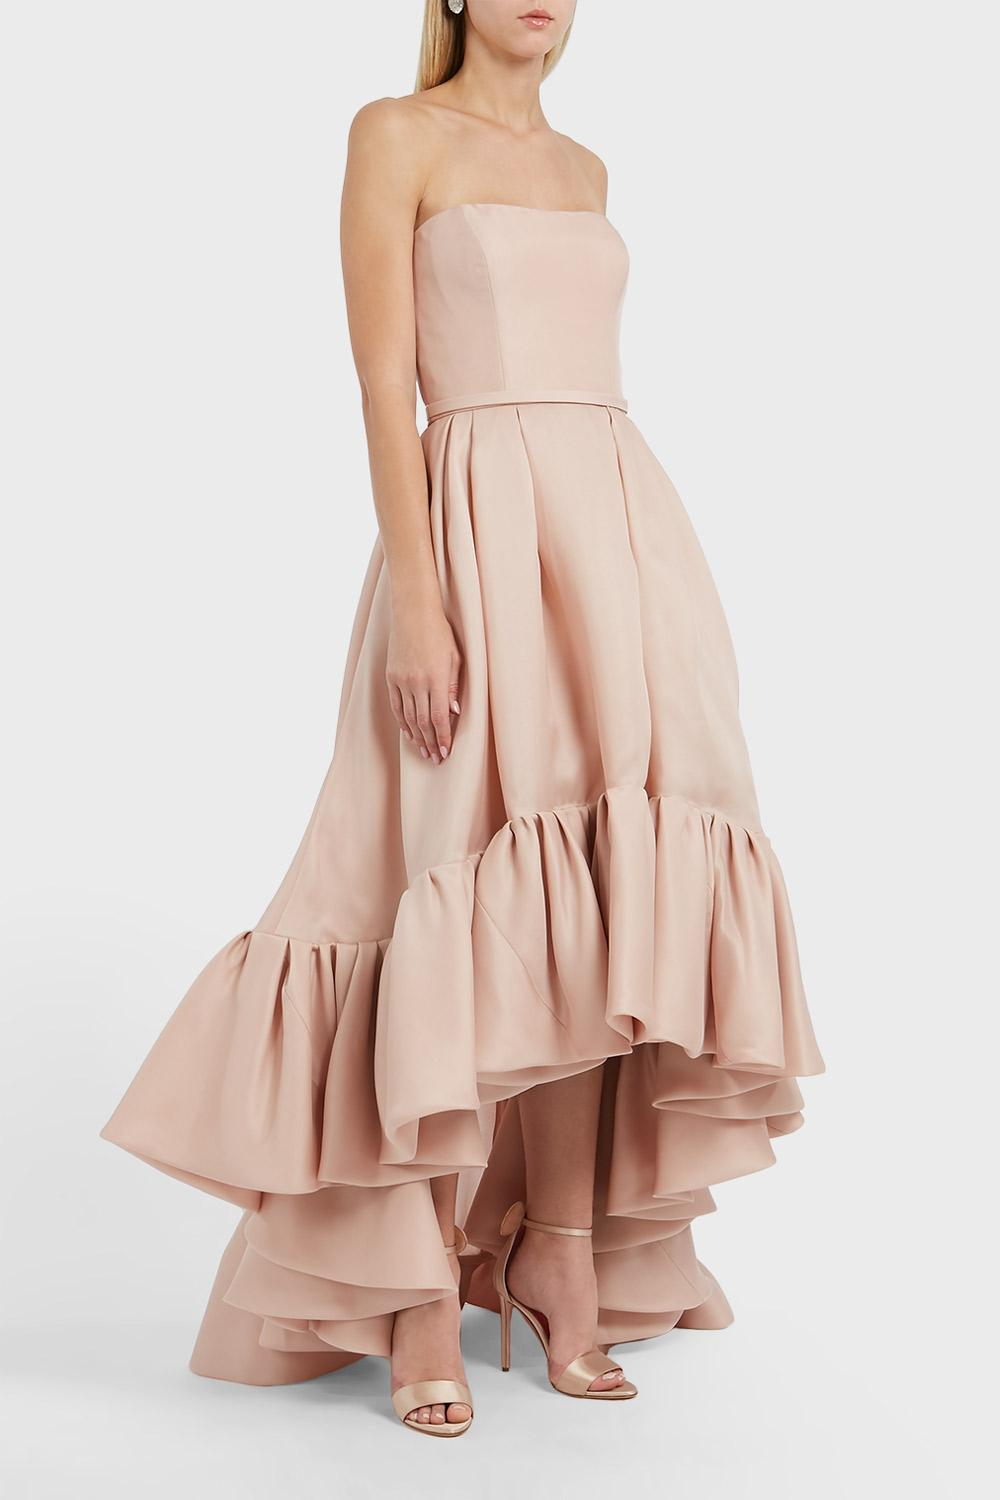 REEM ACRA RUFFLED HEM SILK DRESS, SIZE US8, WOMEN, PINK